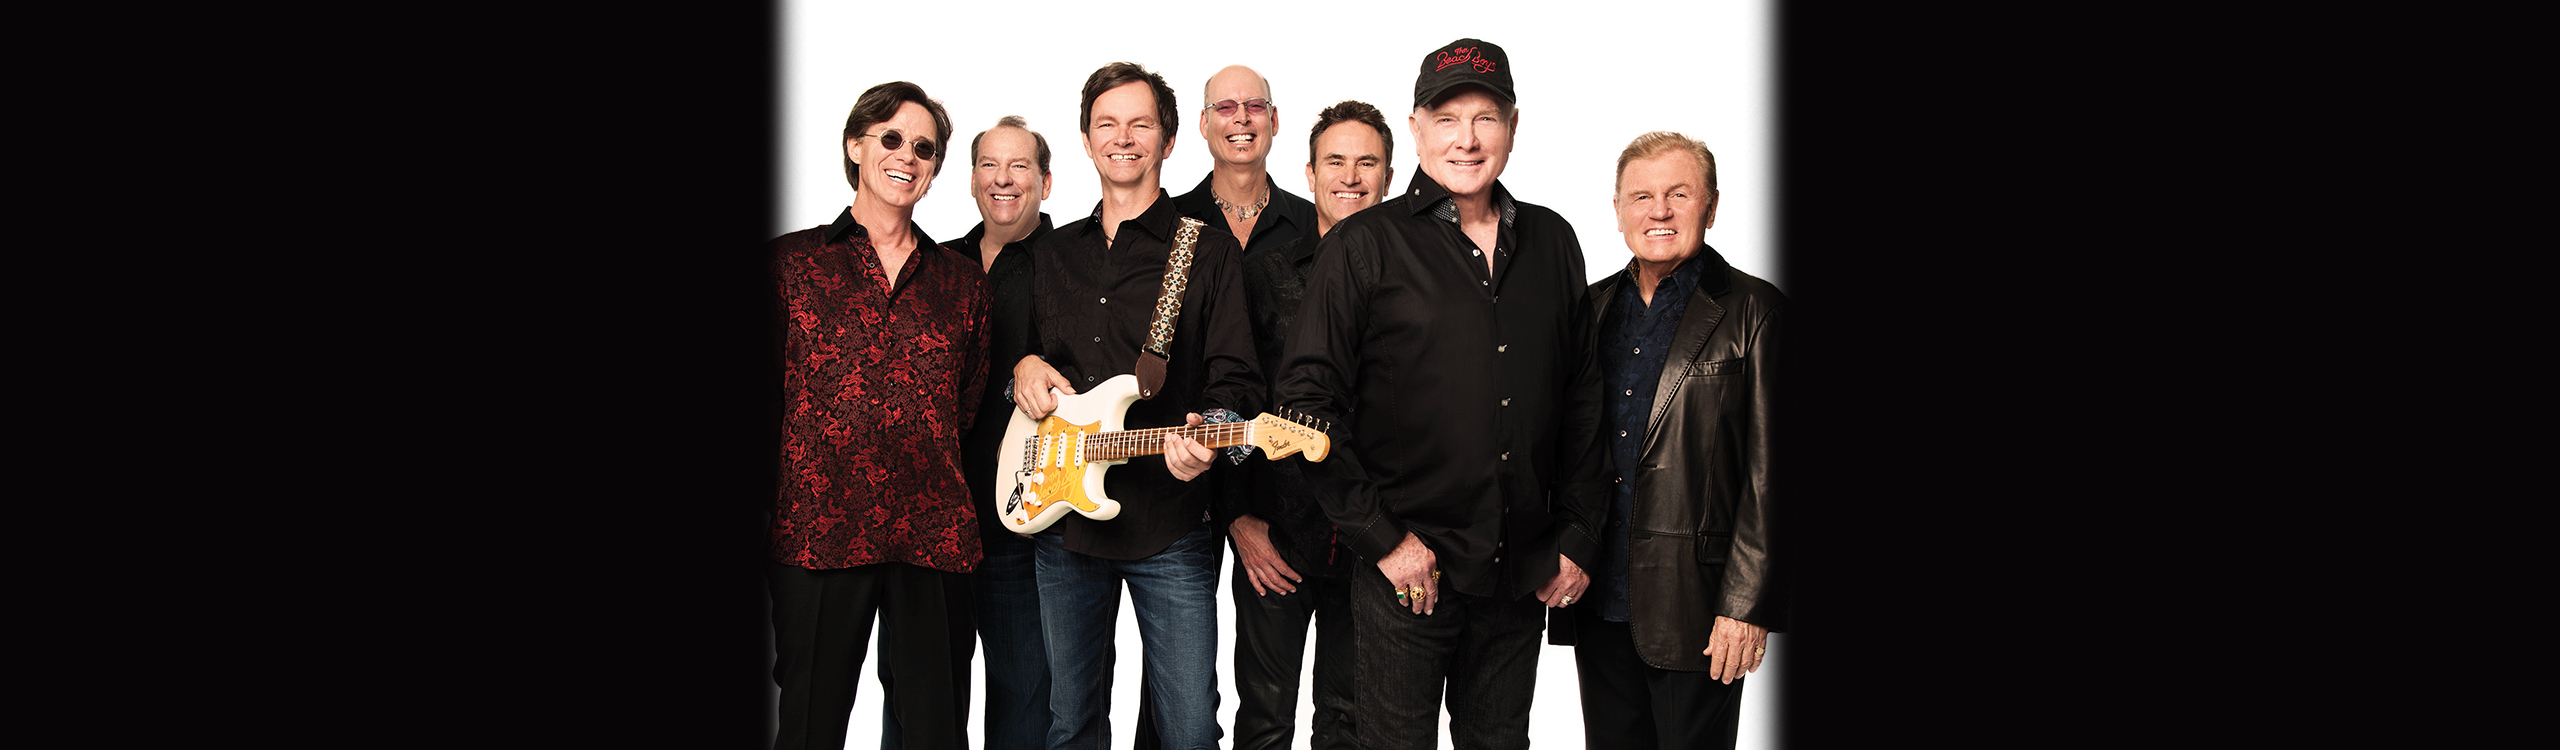 TDC-1009_HeaderBeachboys_2560x750